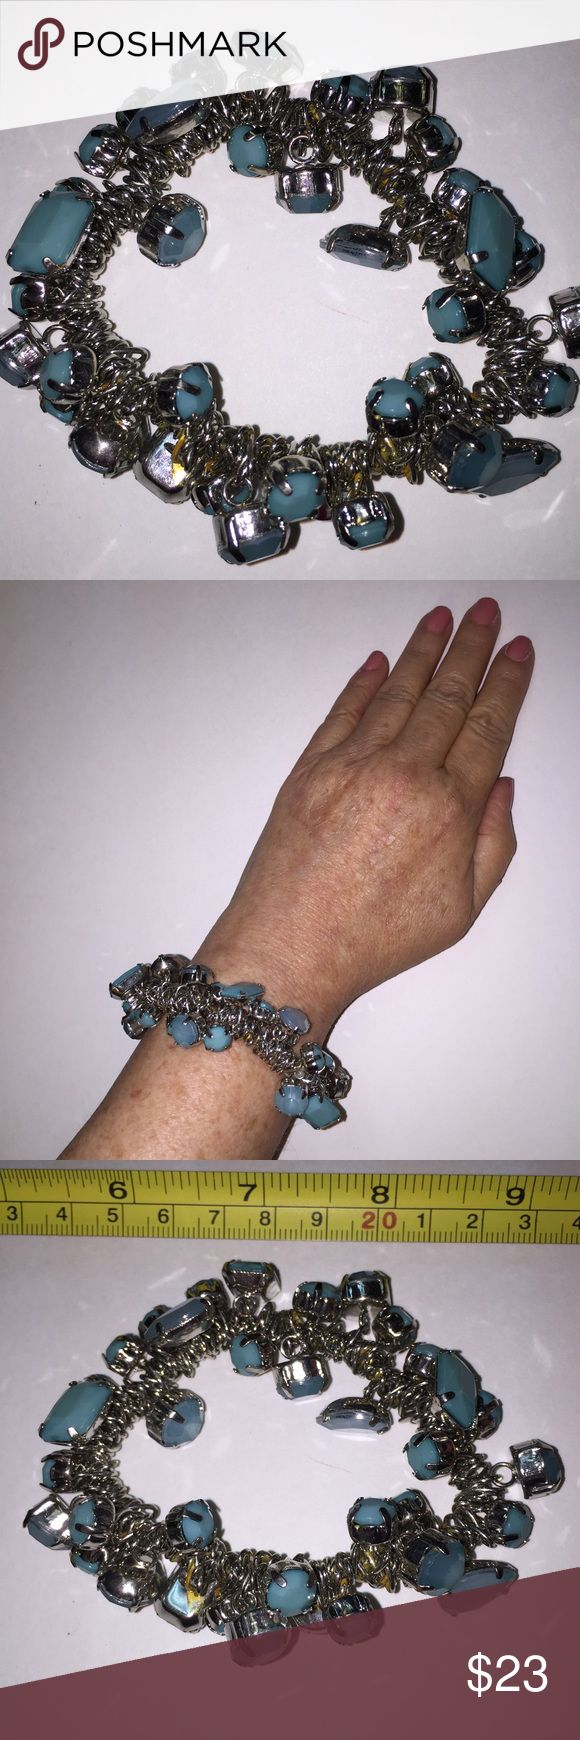 Vint Fun Noisy Faux Turquoise & Silver Tone Stre Vintage Fun Noisy Faux Turquoise & Silver Tone stretch bracelet. Light weight. Size small to medium/large fits most.  Very Feminine. Great Christmas gift or stocking stuffer. Accessorize Jeans or dressy outfit. Price is firm please. Vintage Jewelry Bracelets